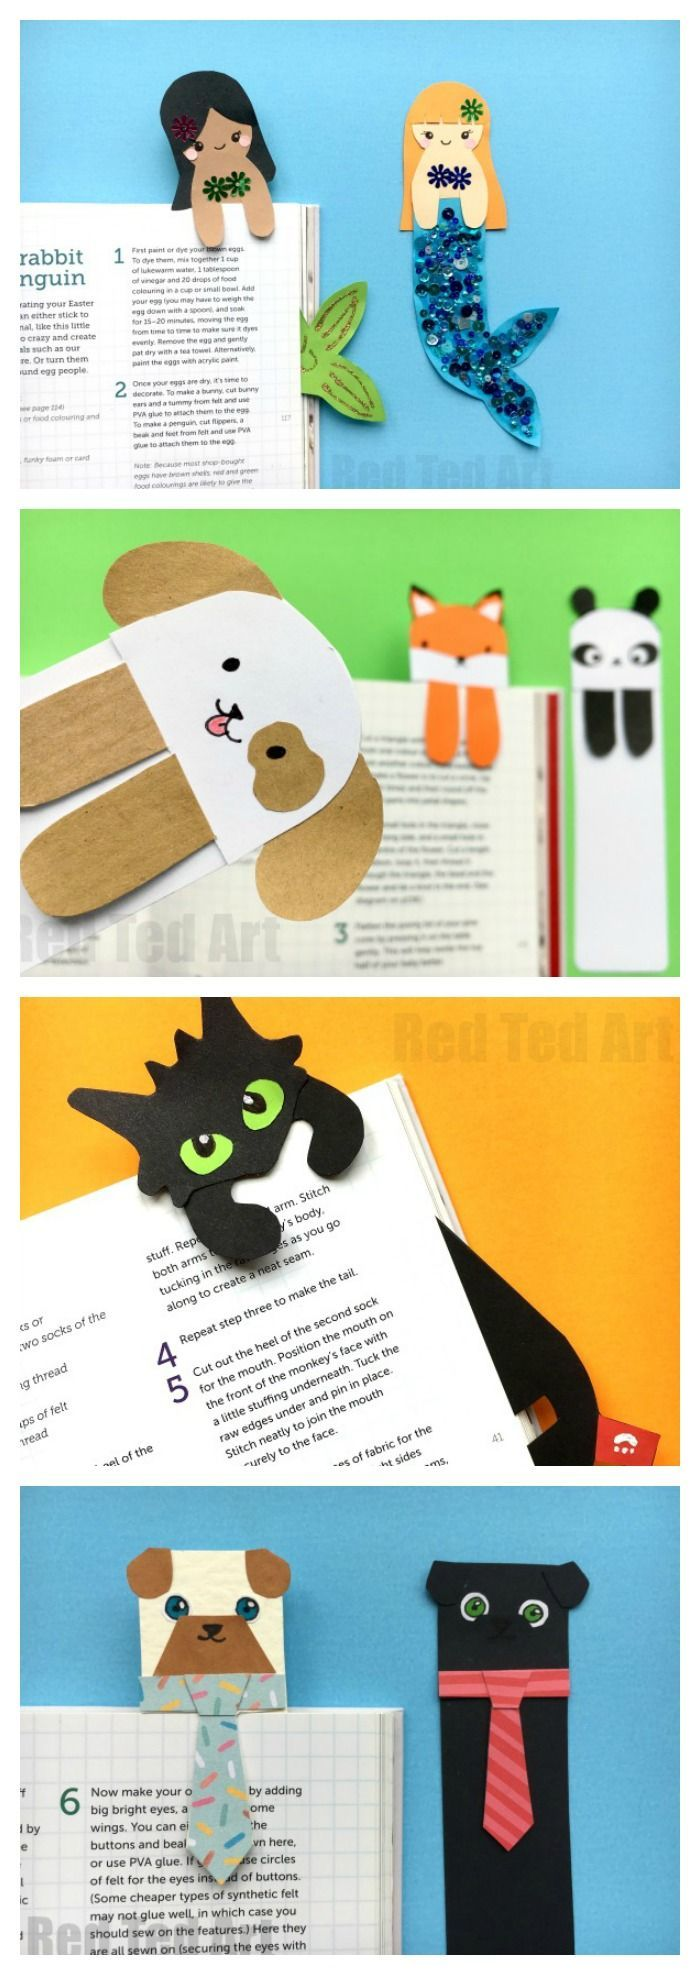 "Oh how we love a Paper Bookmark DIY. Here are some cute and quirky ""Hug a Book"" Bookmark DIYs. Aren't they the cutest? The Tie & Pug Bookmark cracks me up (perfect for Father's Day or male teachers), the Mermaids are just adorable. Love them all. The best"